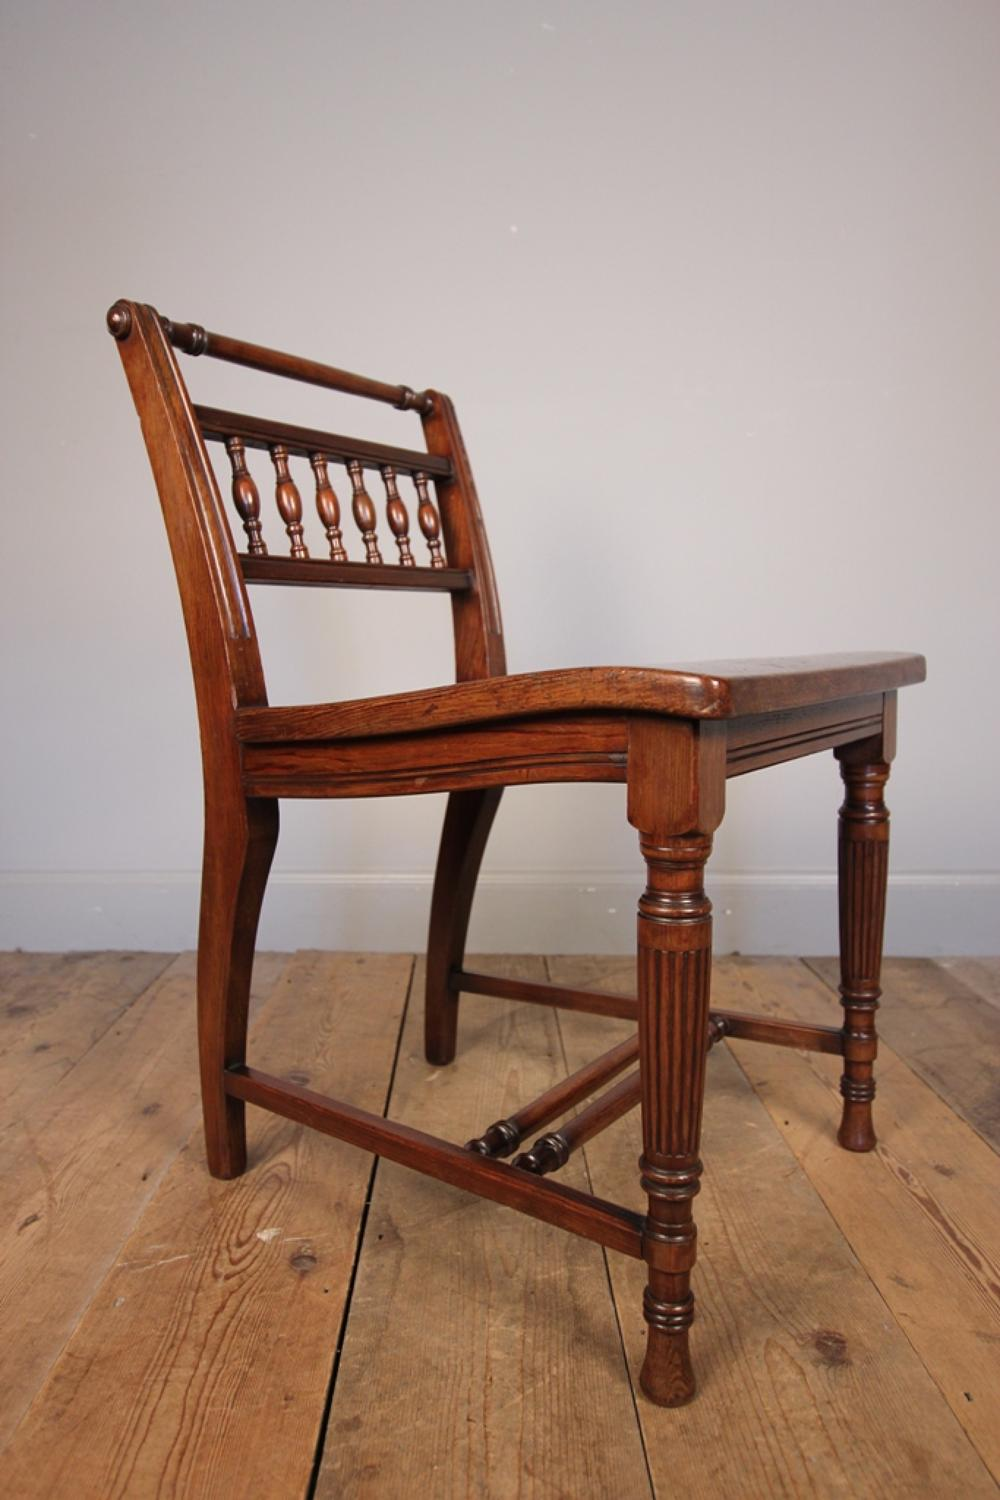 Highly Unusual Curved Seat Chair